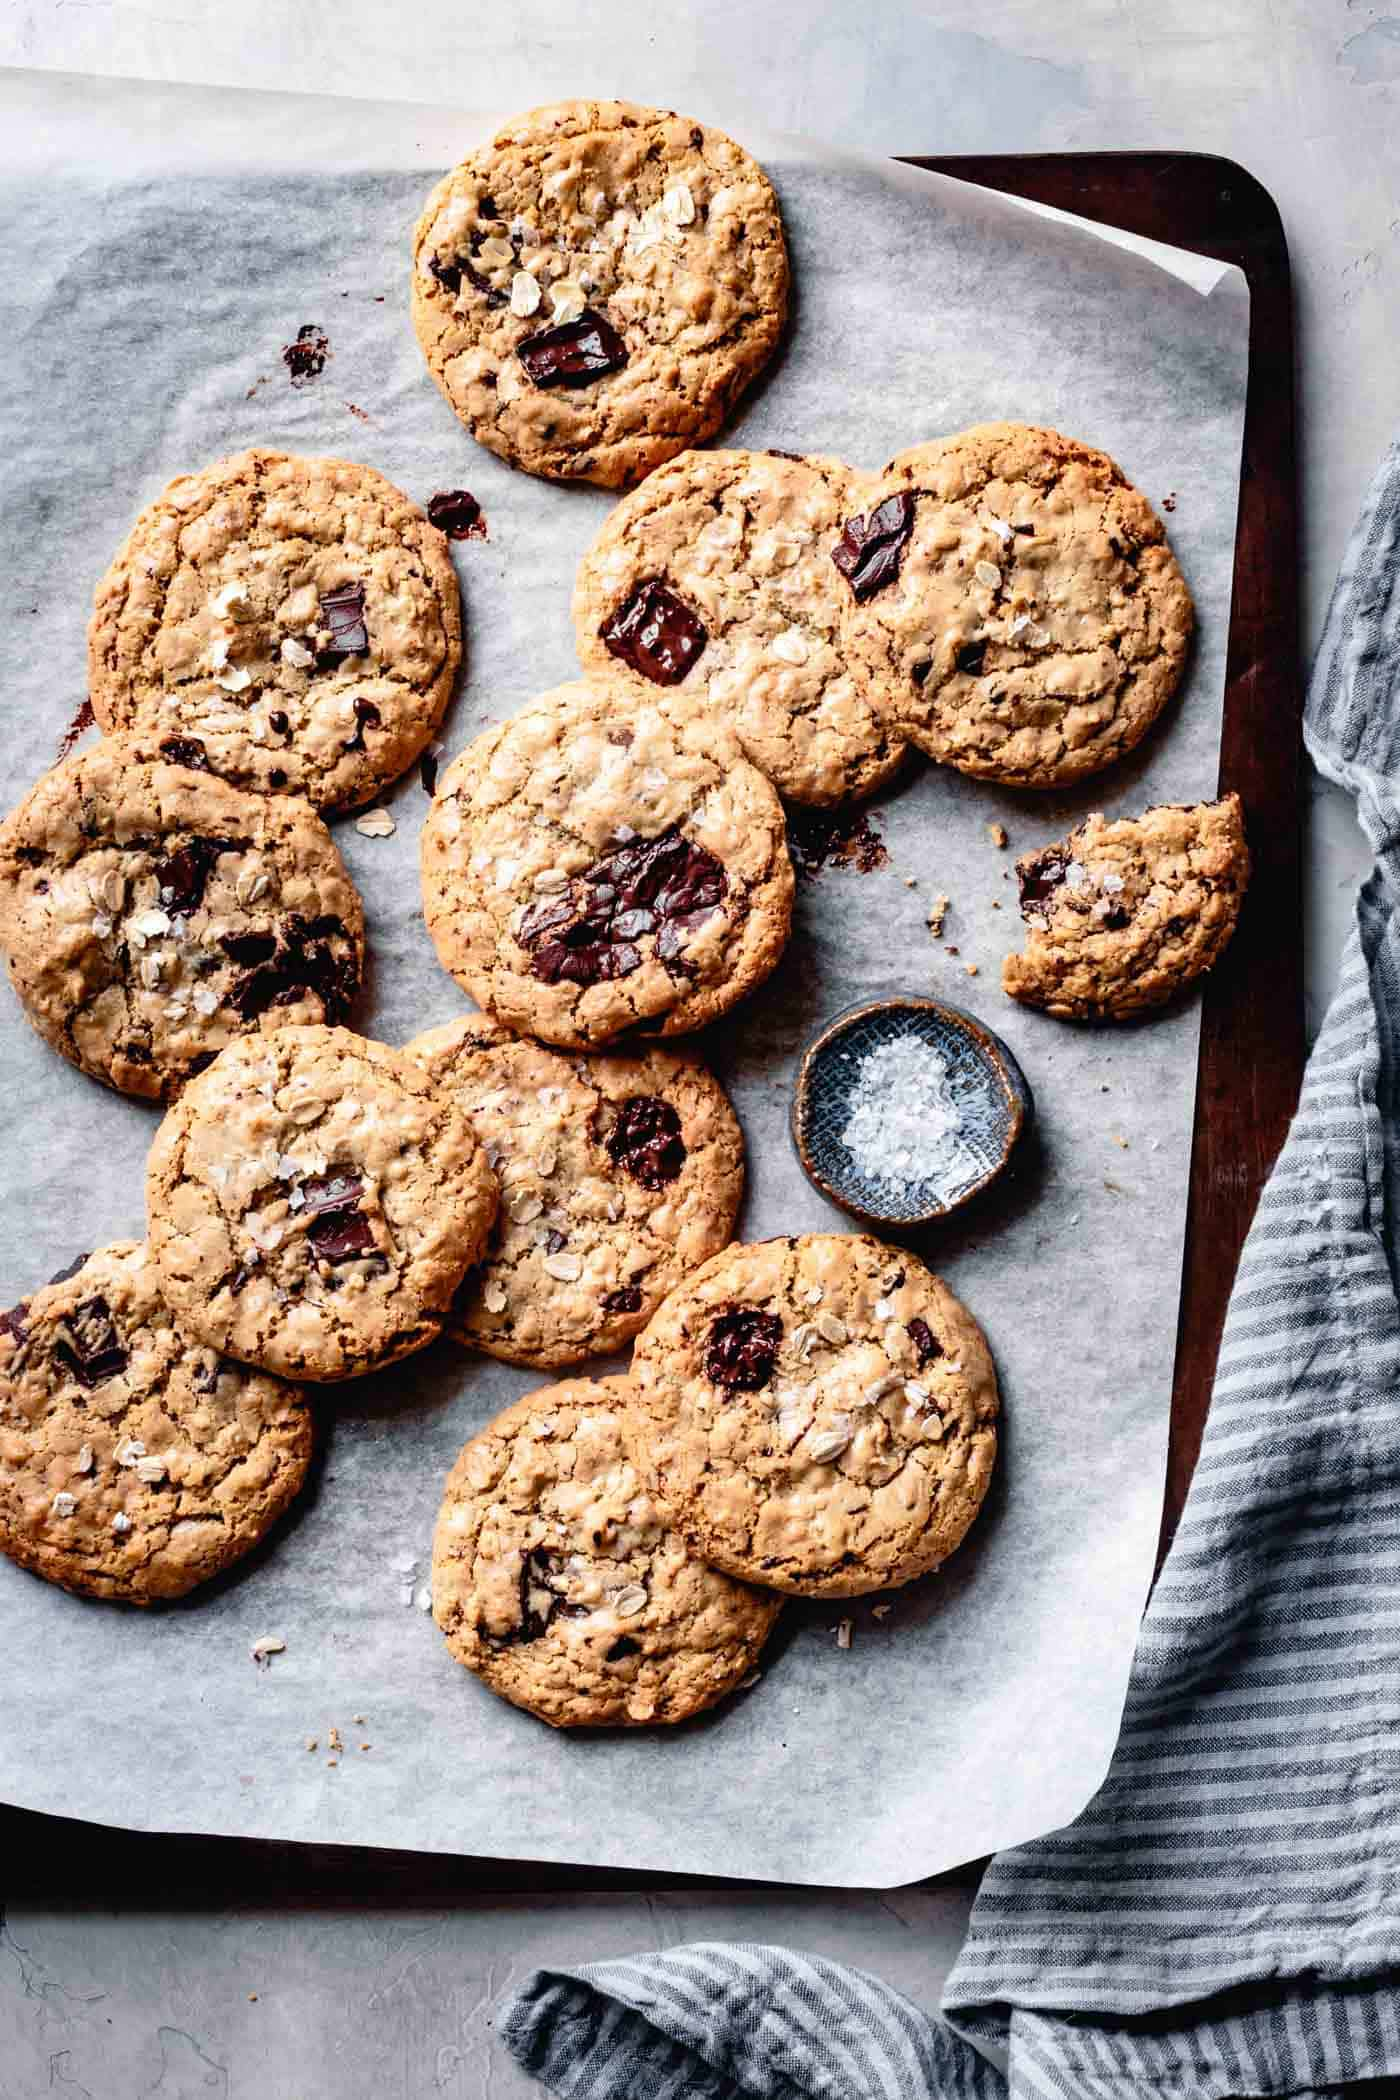 A baking sheet full of vegan gluten-free oatmeal chocolate chip cookies fresh from the oven